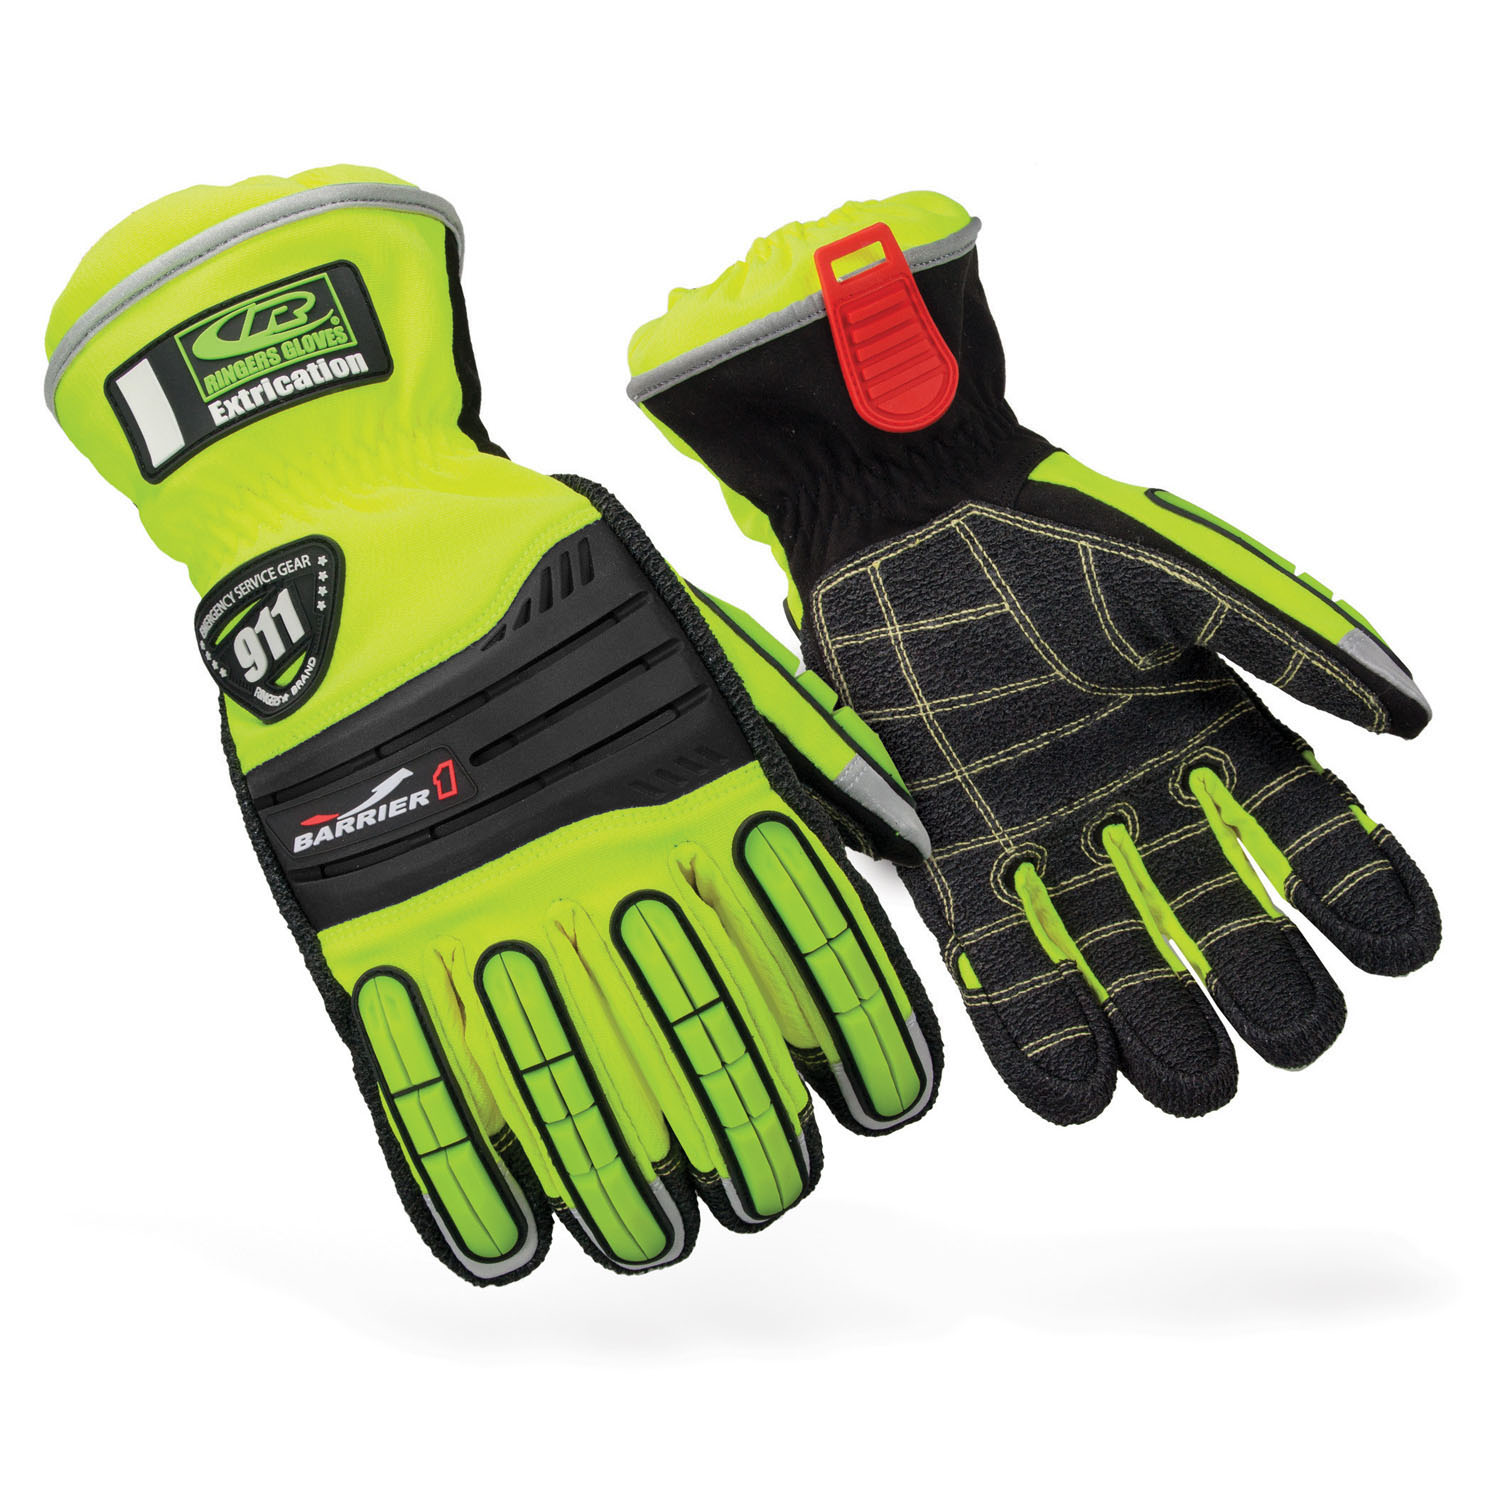 Ringers Barrier I Extrication Gloves